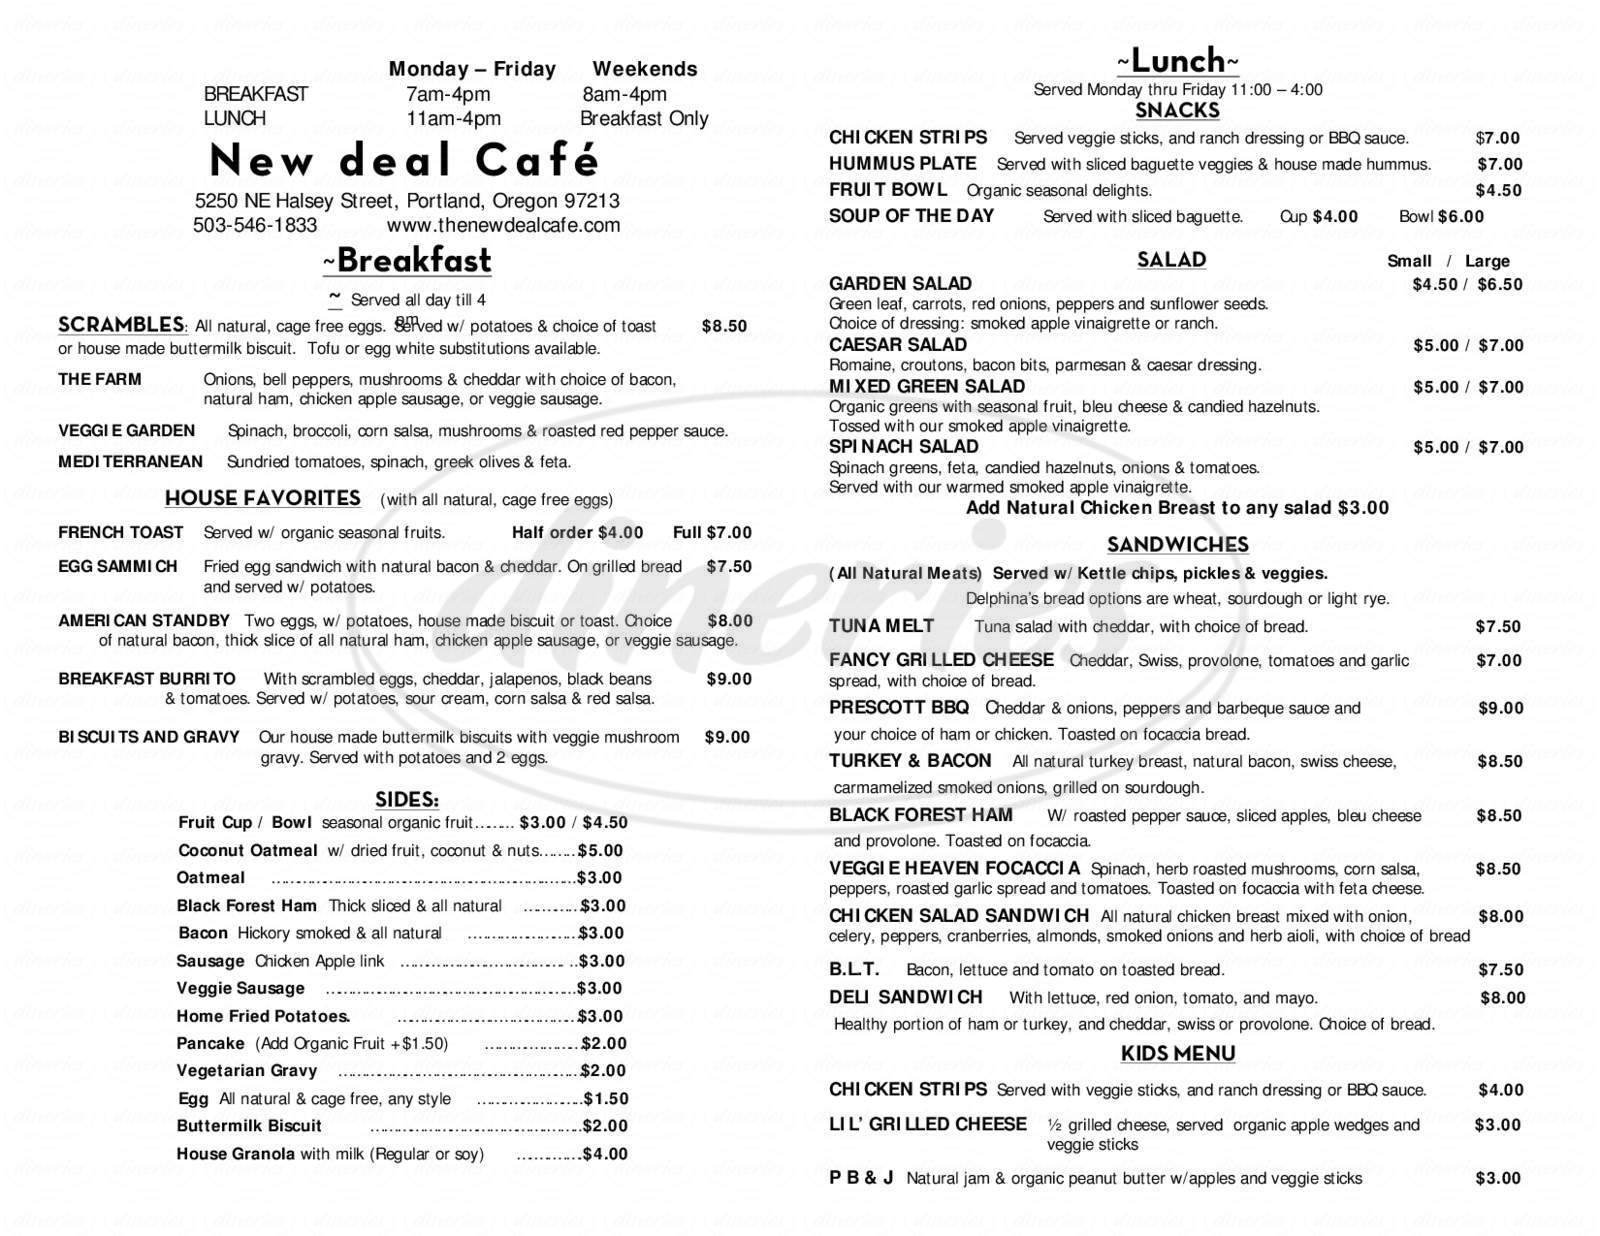 menu for New Deal Cafe